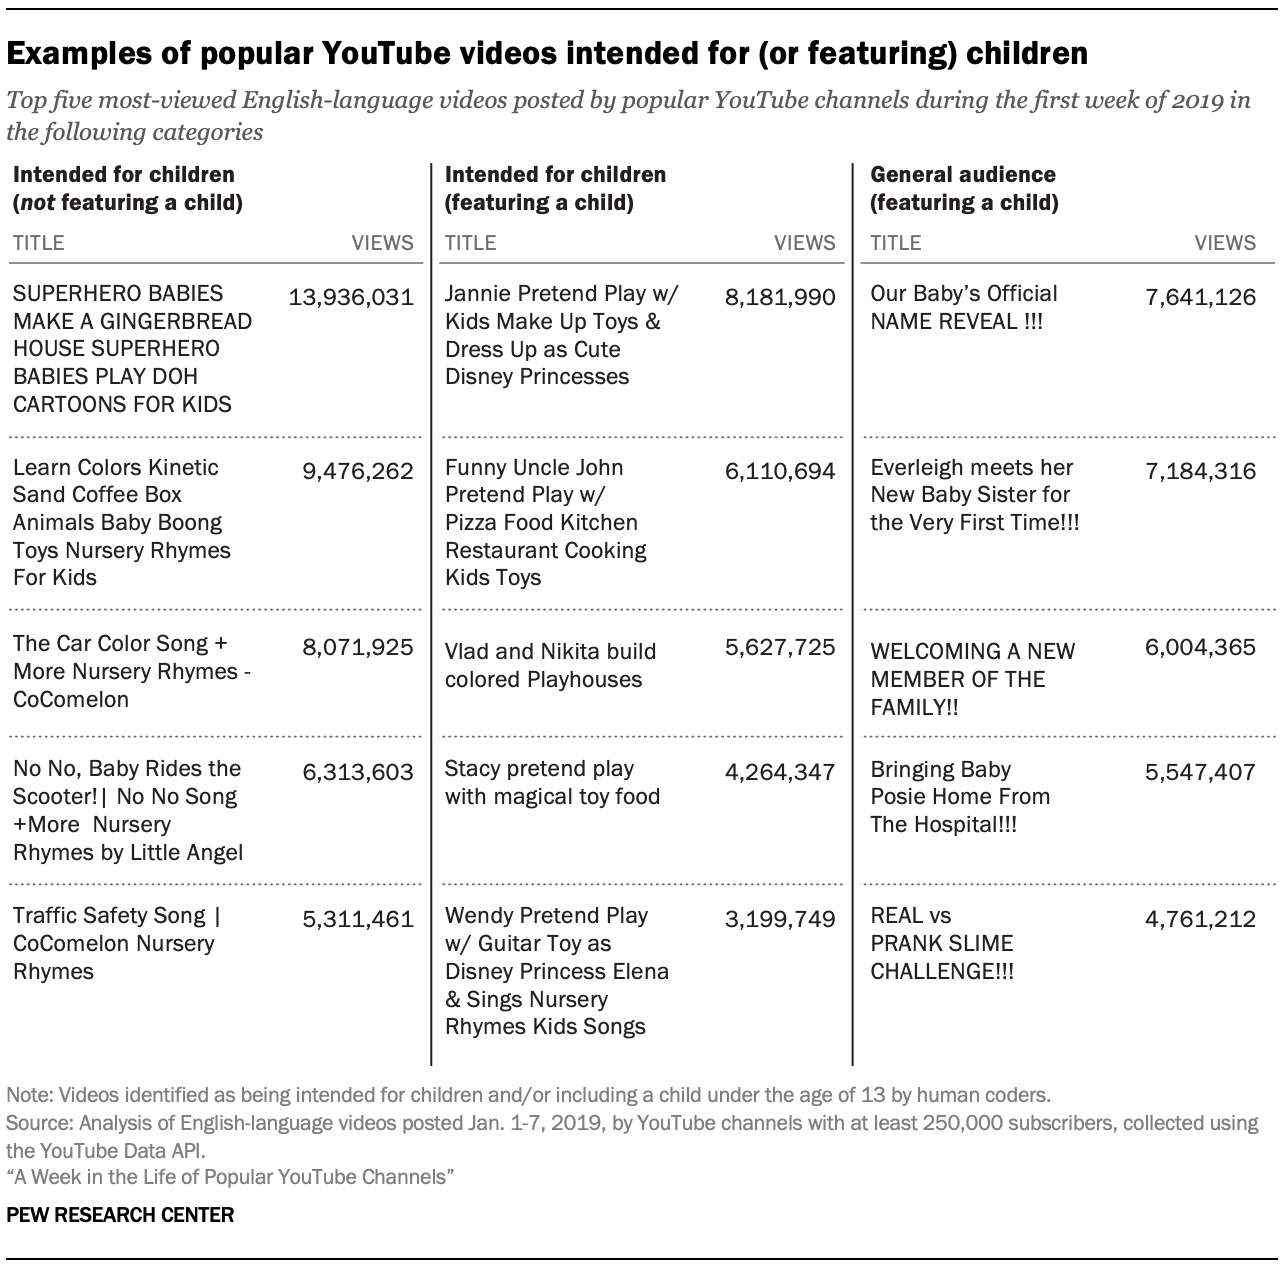 Examples of popular YouTube videos intended for (or featuring) children